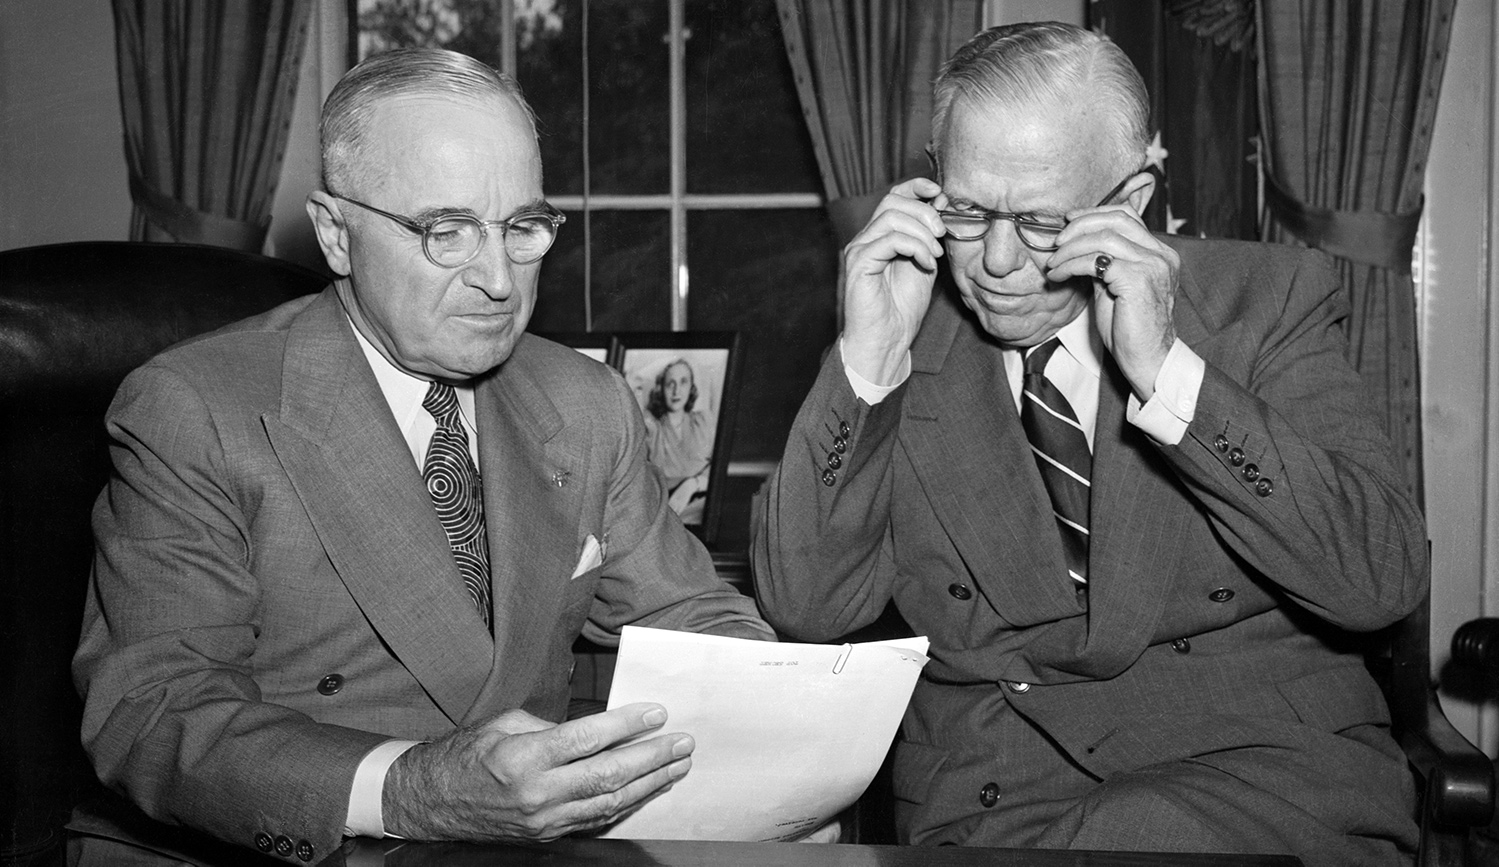 President Harry Truman and Defense Secretary George C. Marshall in 1951. Getty.